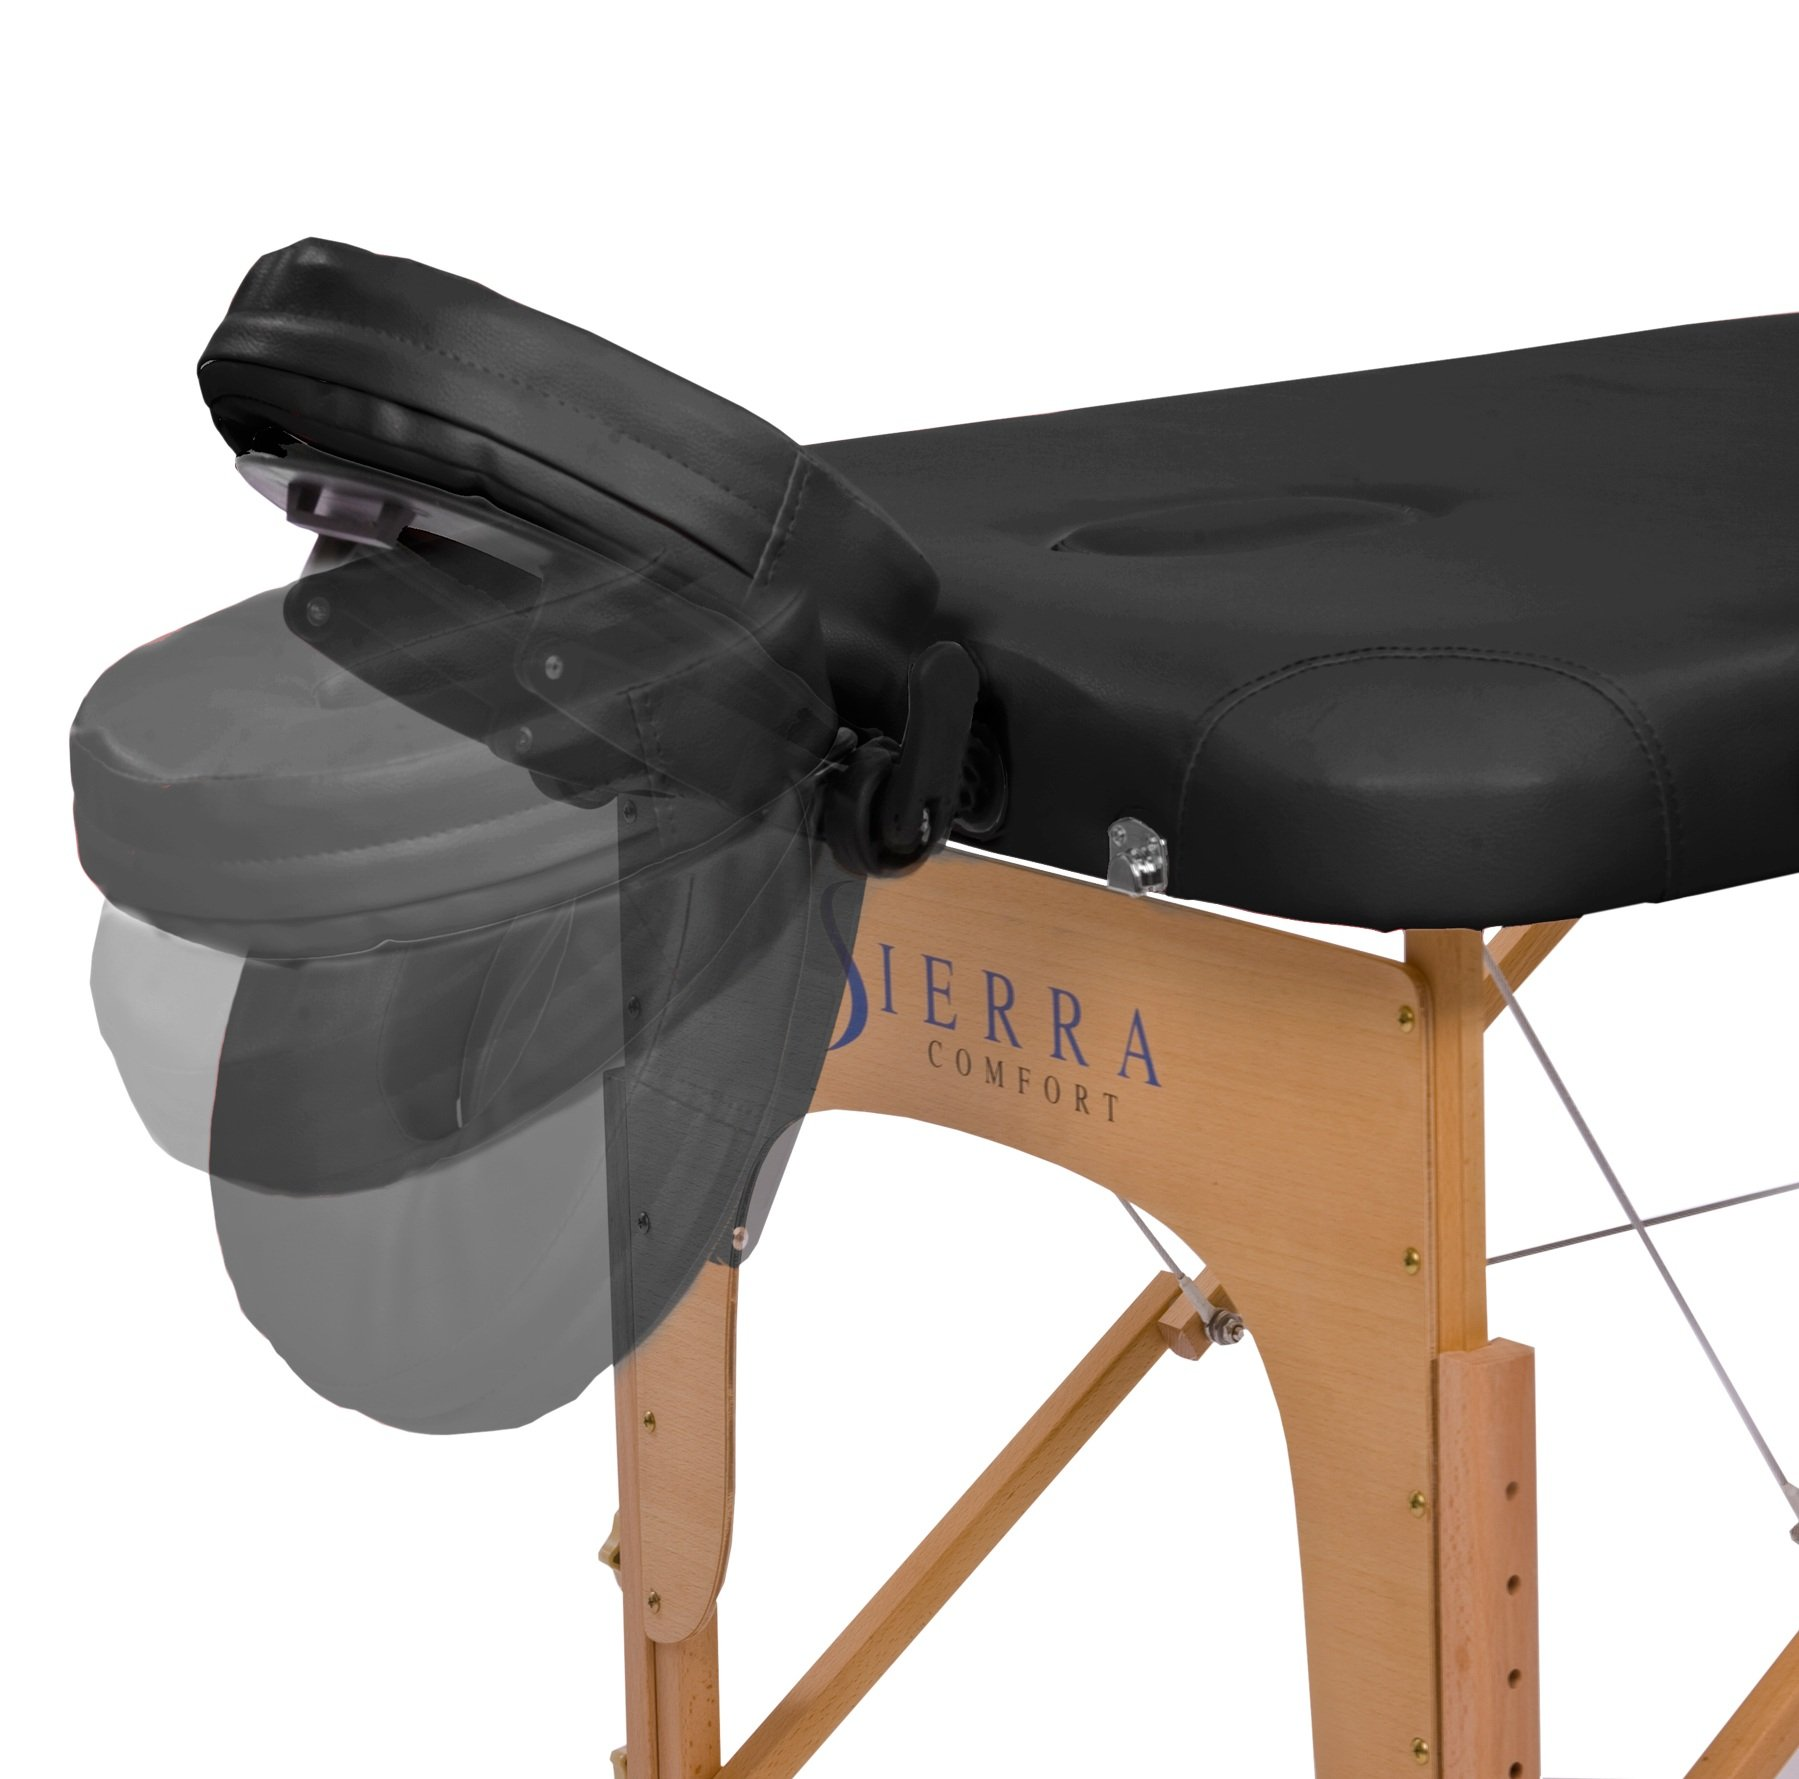 Sierra Comfort All-Inclusive Portable Massage Table by SierraComfort (Image #11)